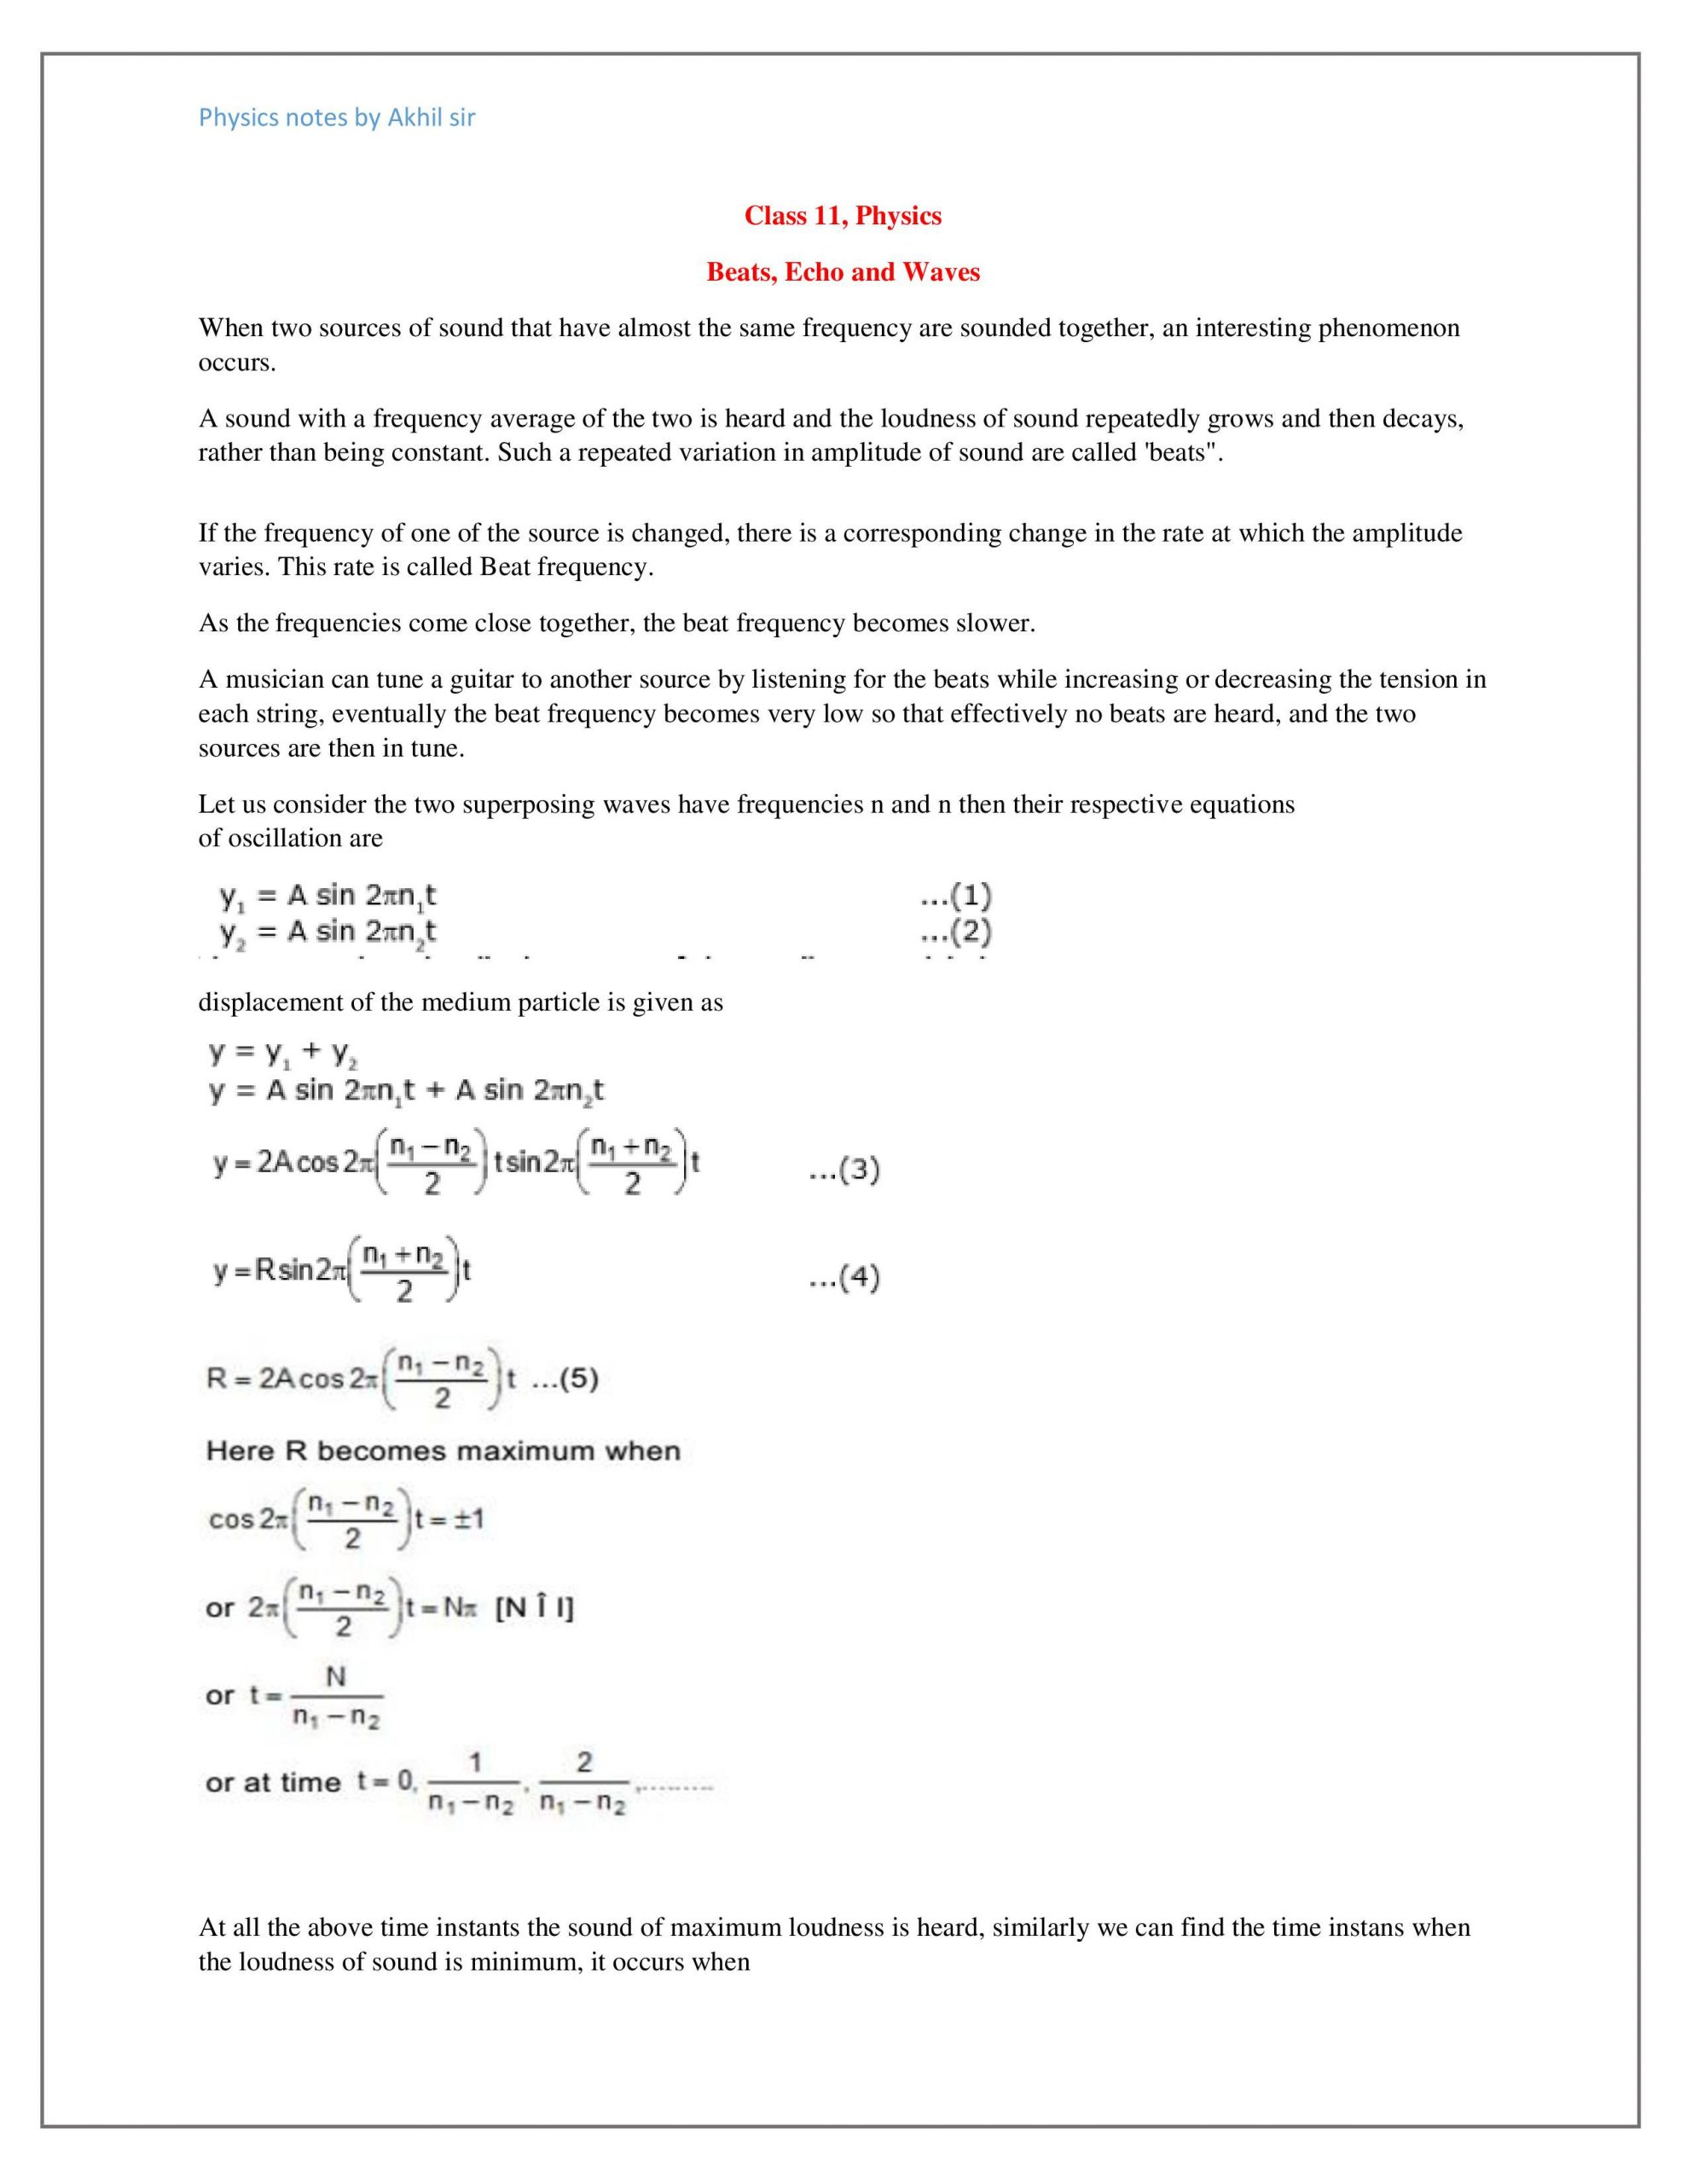 Sound Waves Worksheet Middle School Beat Echo Wave Notes